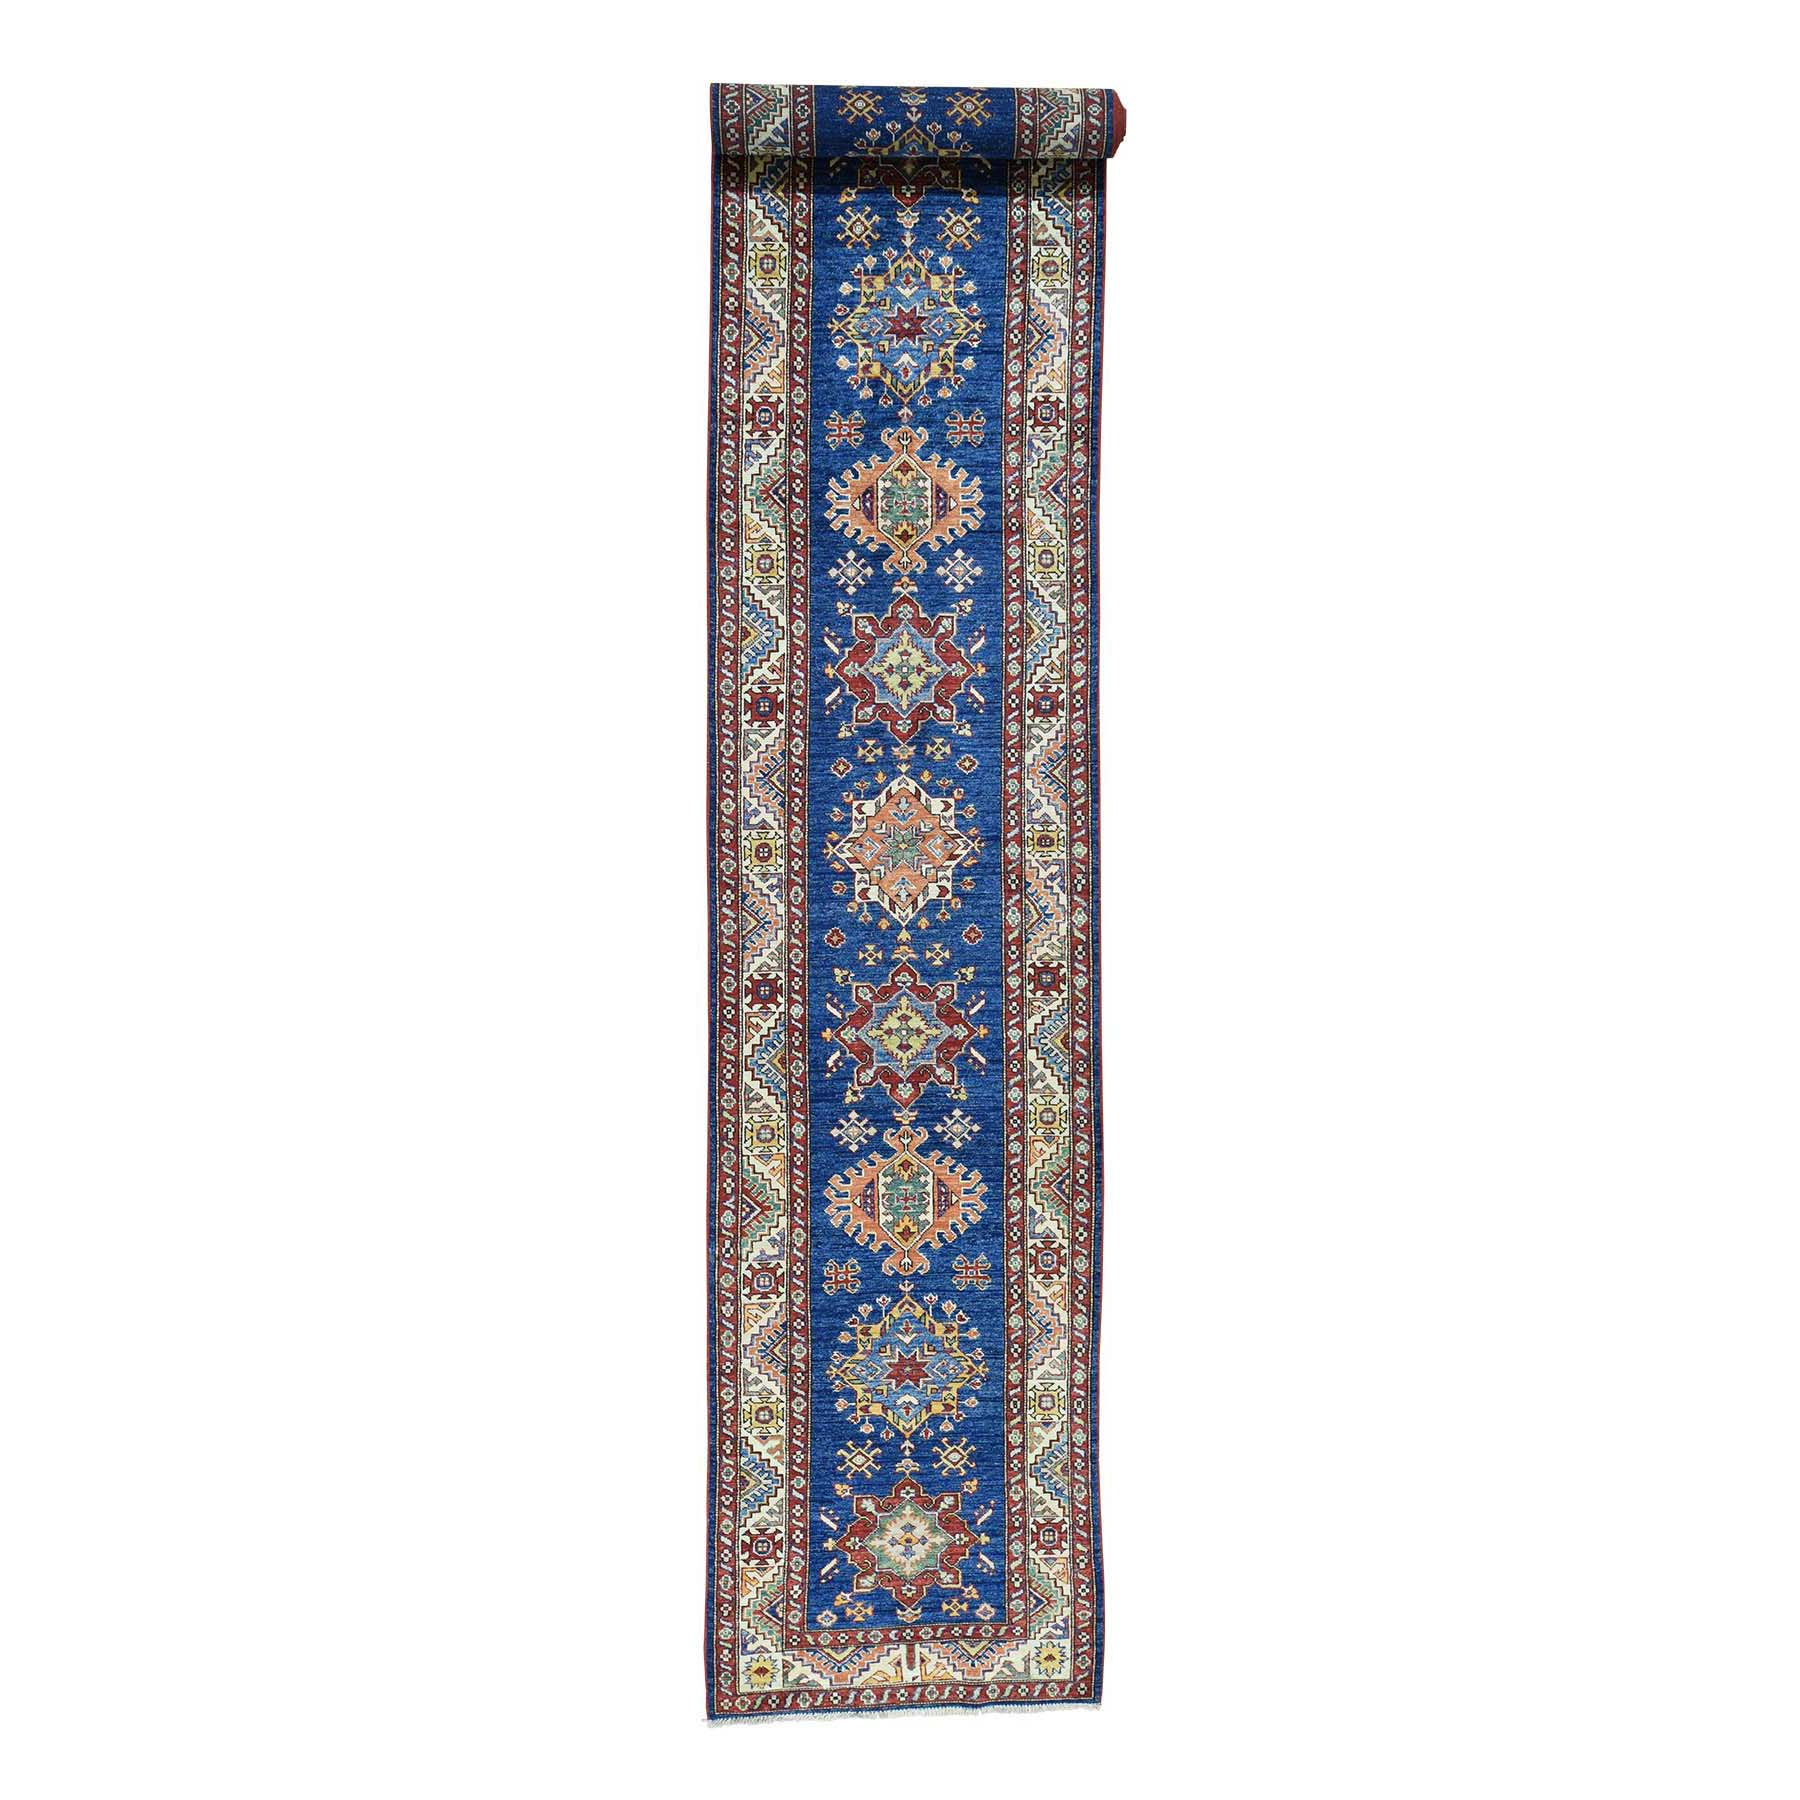 "2'9""X17'4"" Hand-Knotted Super Kazak Xl Runner Tribal Design Oriental Rug moac09c8"